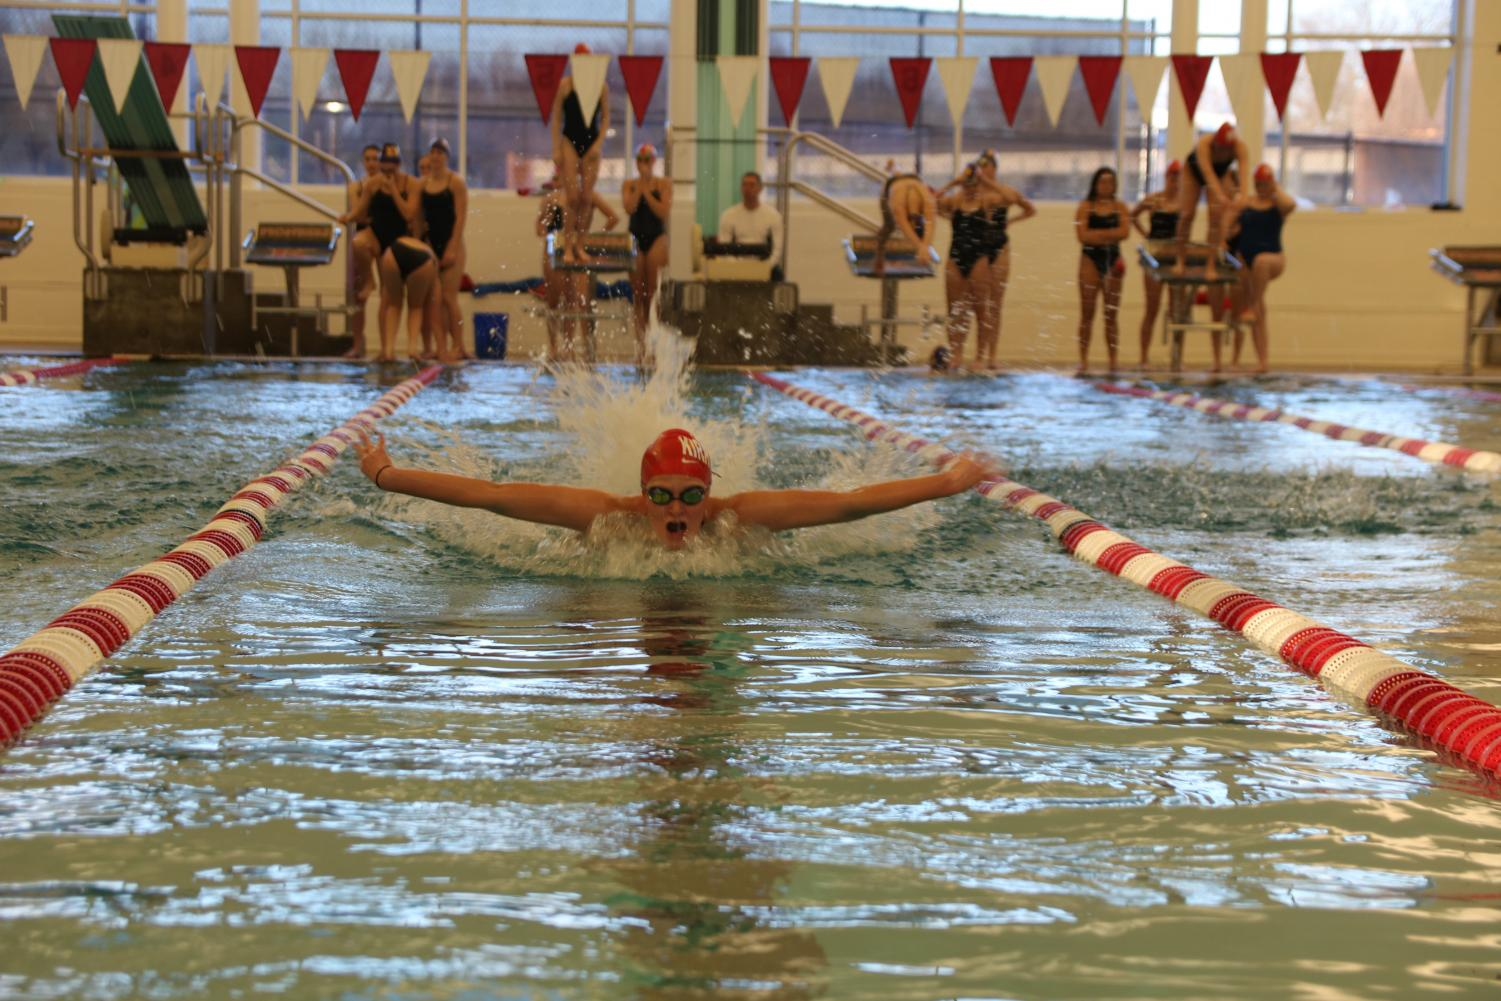 At+the+start+of+the+Senior+Night+swim+meet%2C+Molly+Sheridan%2C+senior%2C+pushes+up+out+of+the+water+to+take+a+breath+as+she+swims+fly.+Her+arms+stretching+across+the+lane+as+the+late+afternoon+sun+shines+through+the+windows+of+the+Walker+Natatorium+Jan.+24.